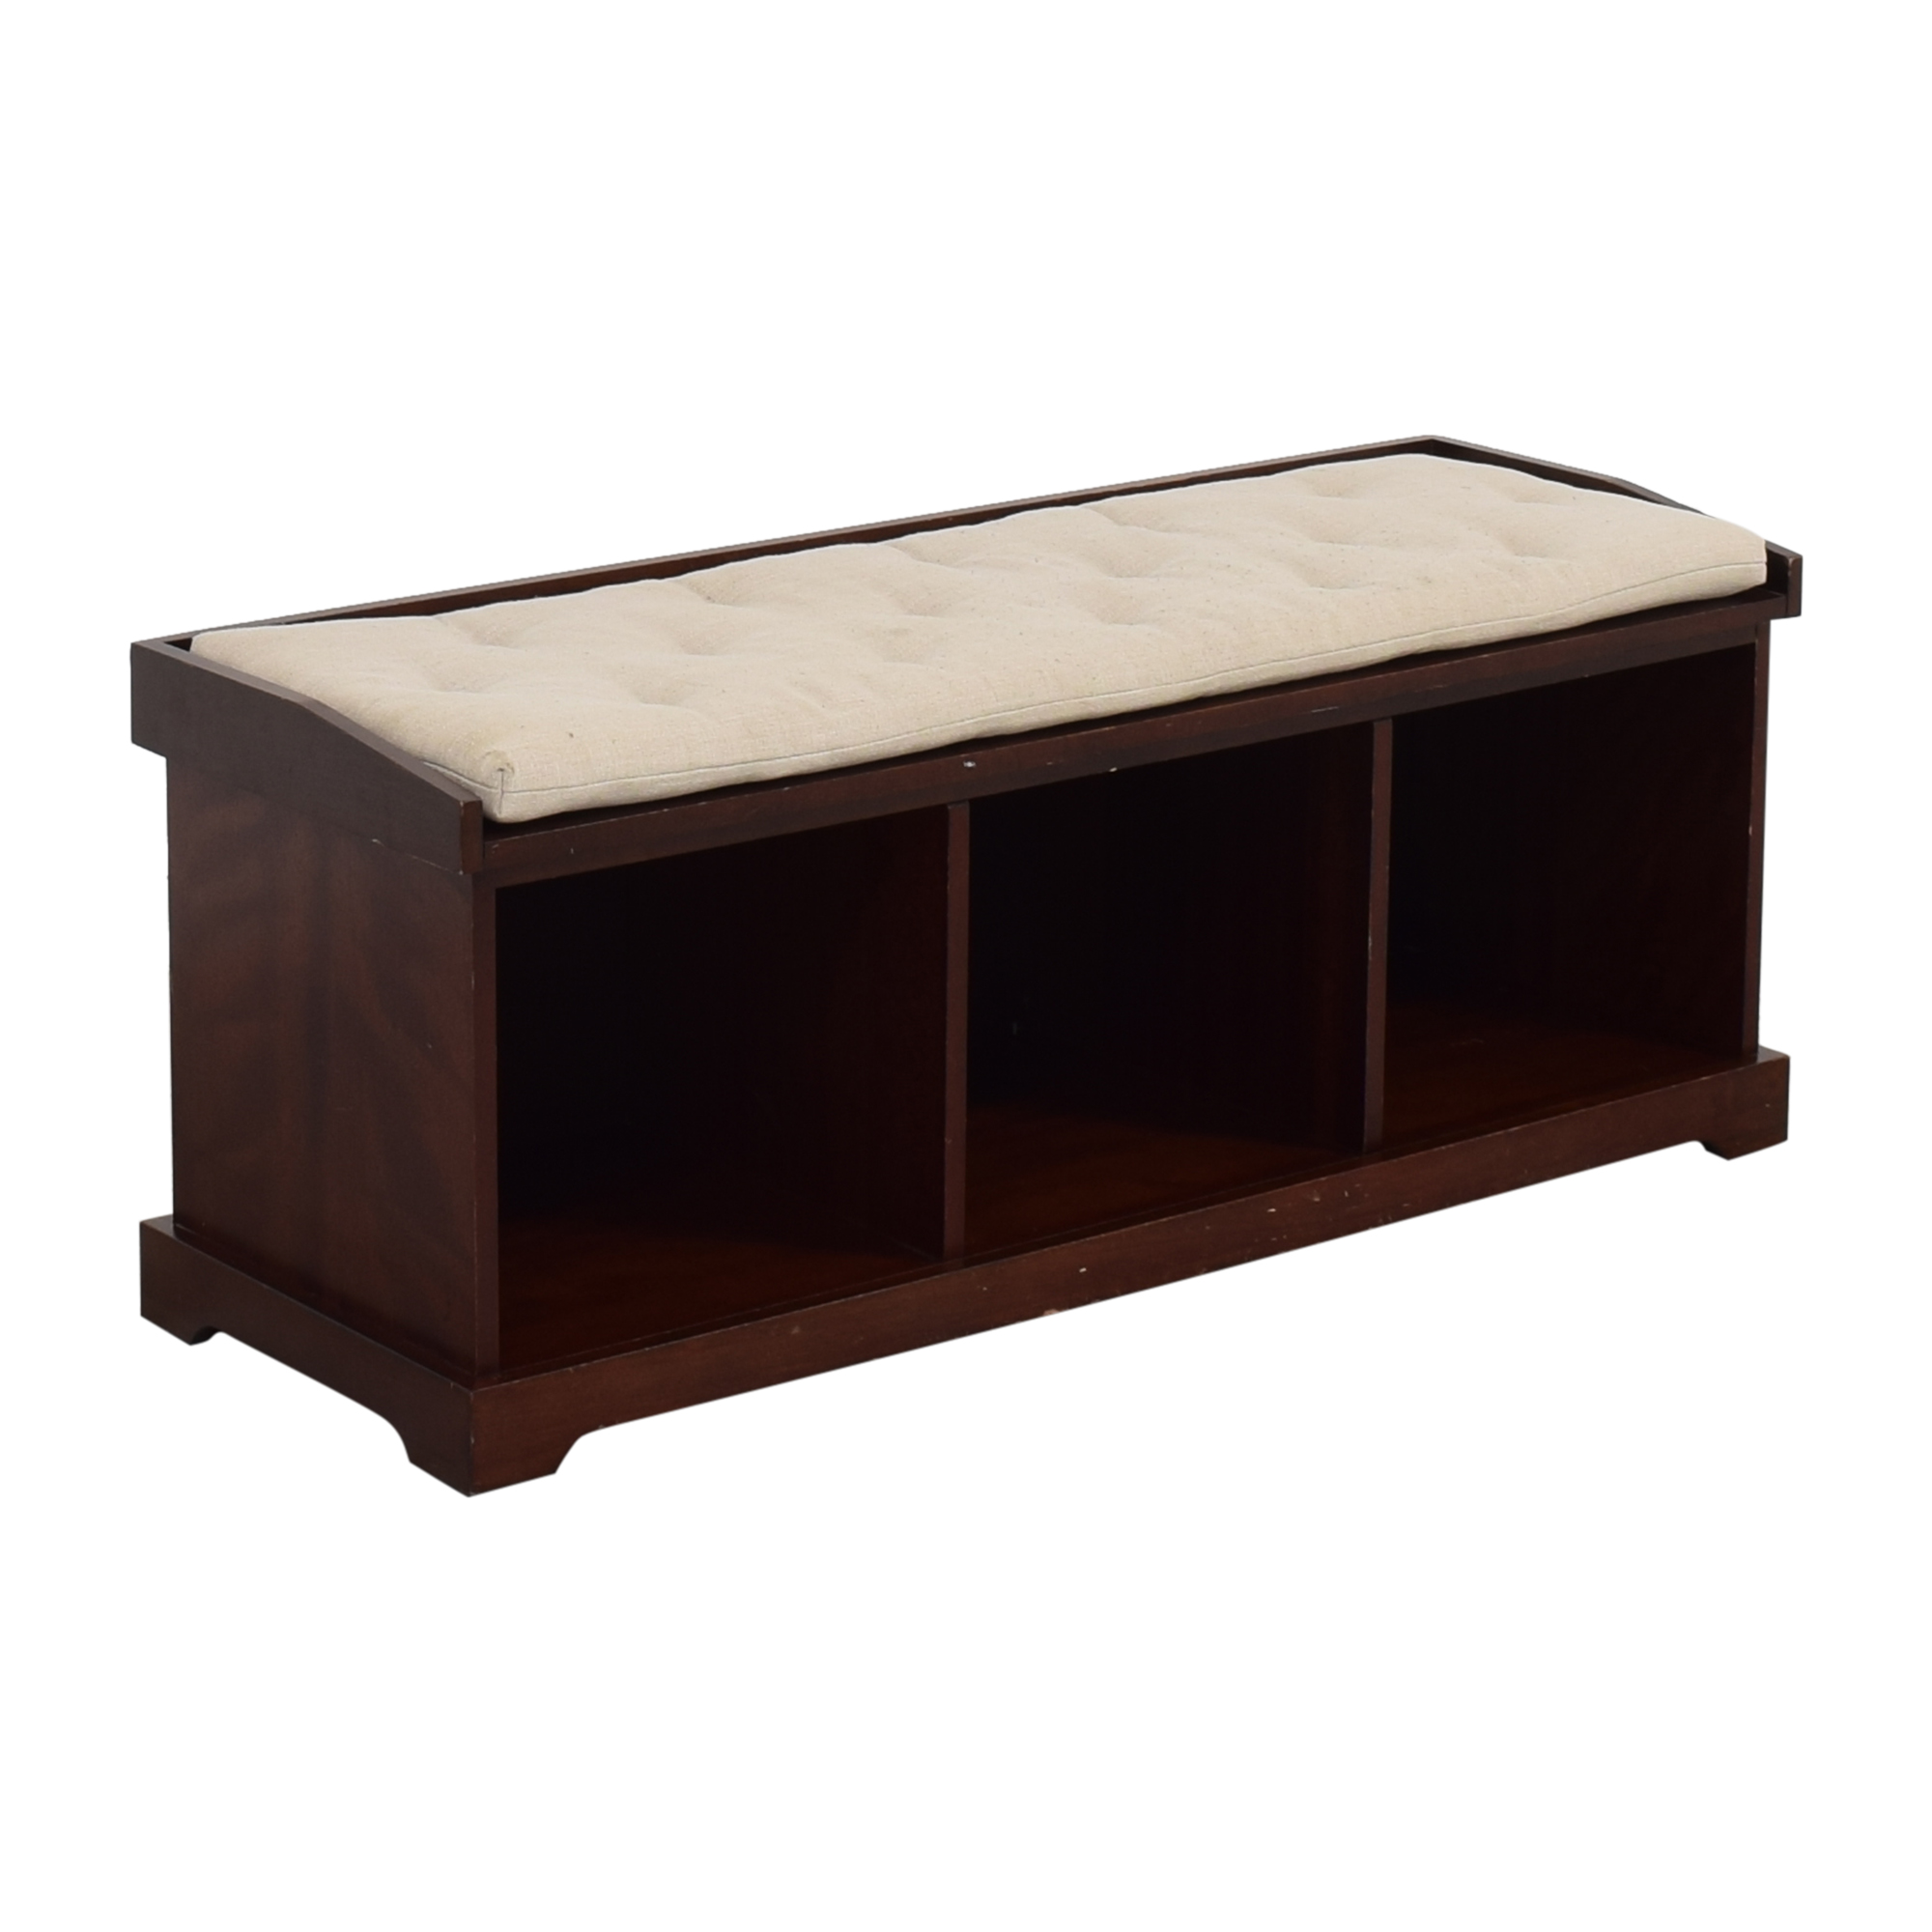 shop Pottery Barn Pottery Barn Samantha Bench with Cushion online